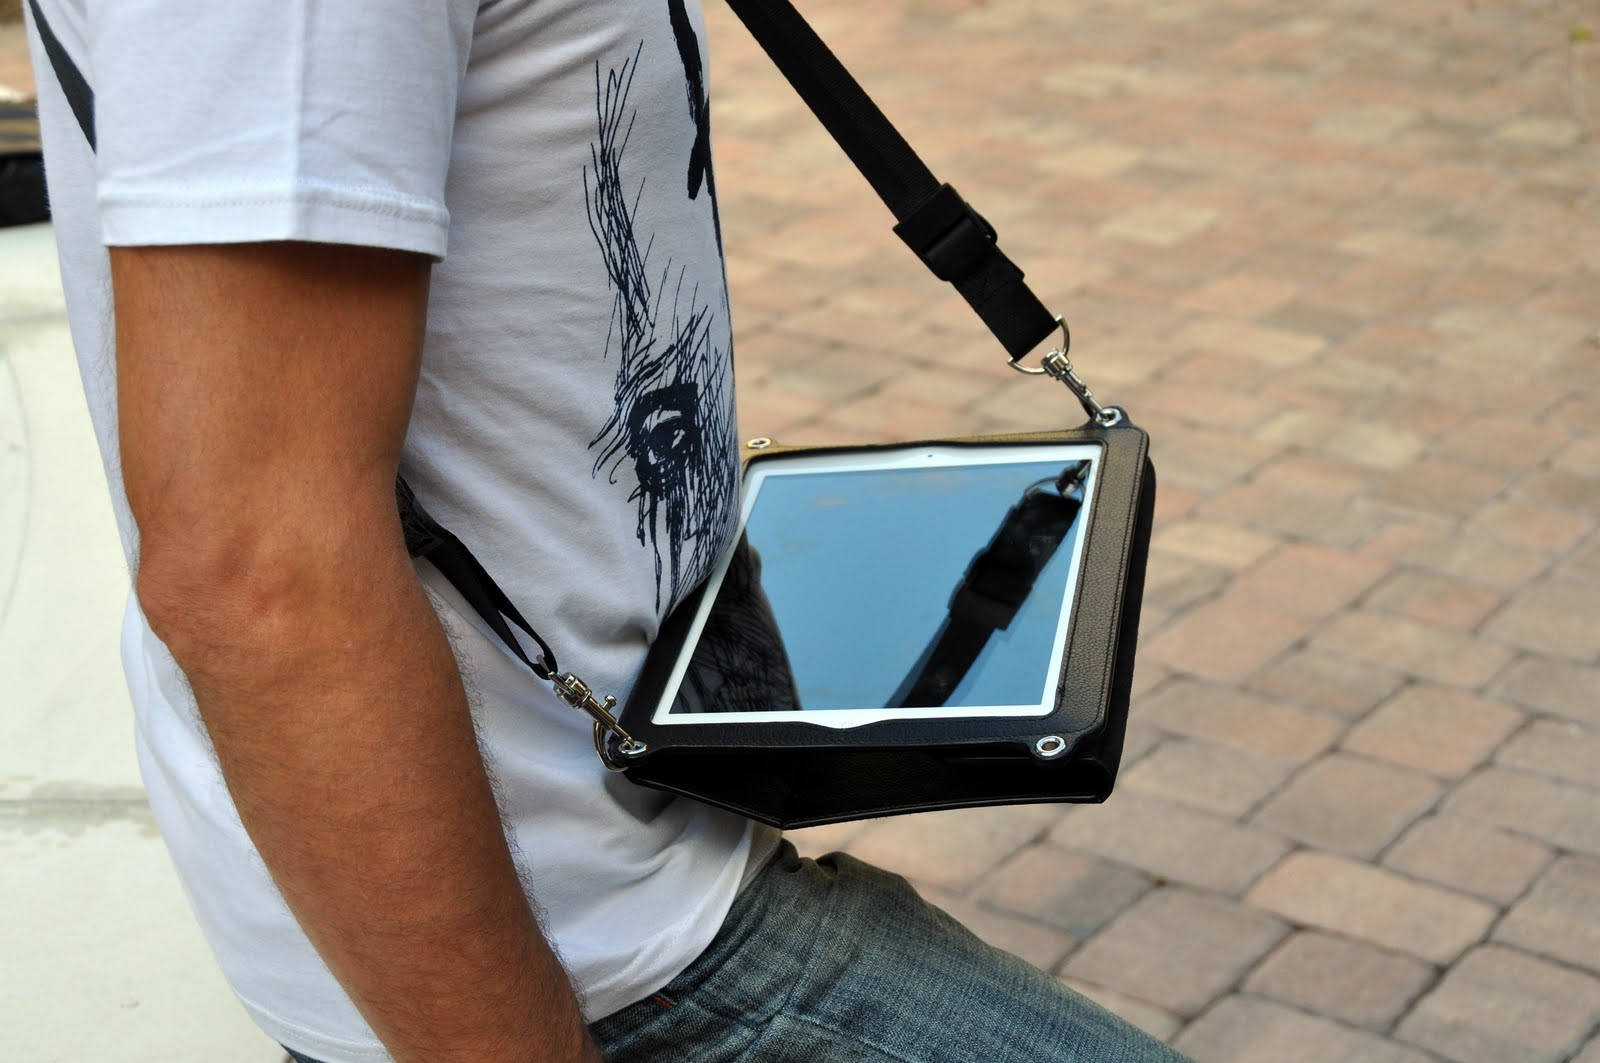 Hands-free iPad case Across in use. Type with both hands.